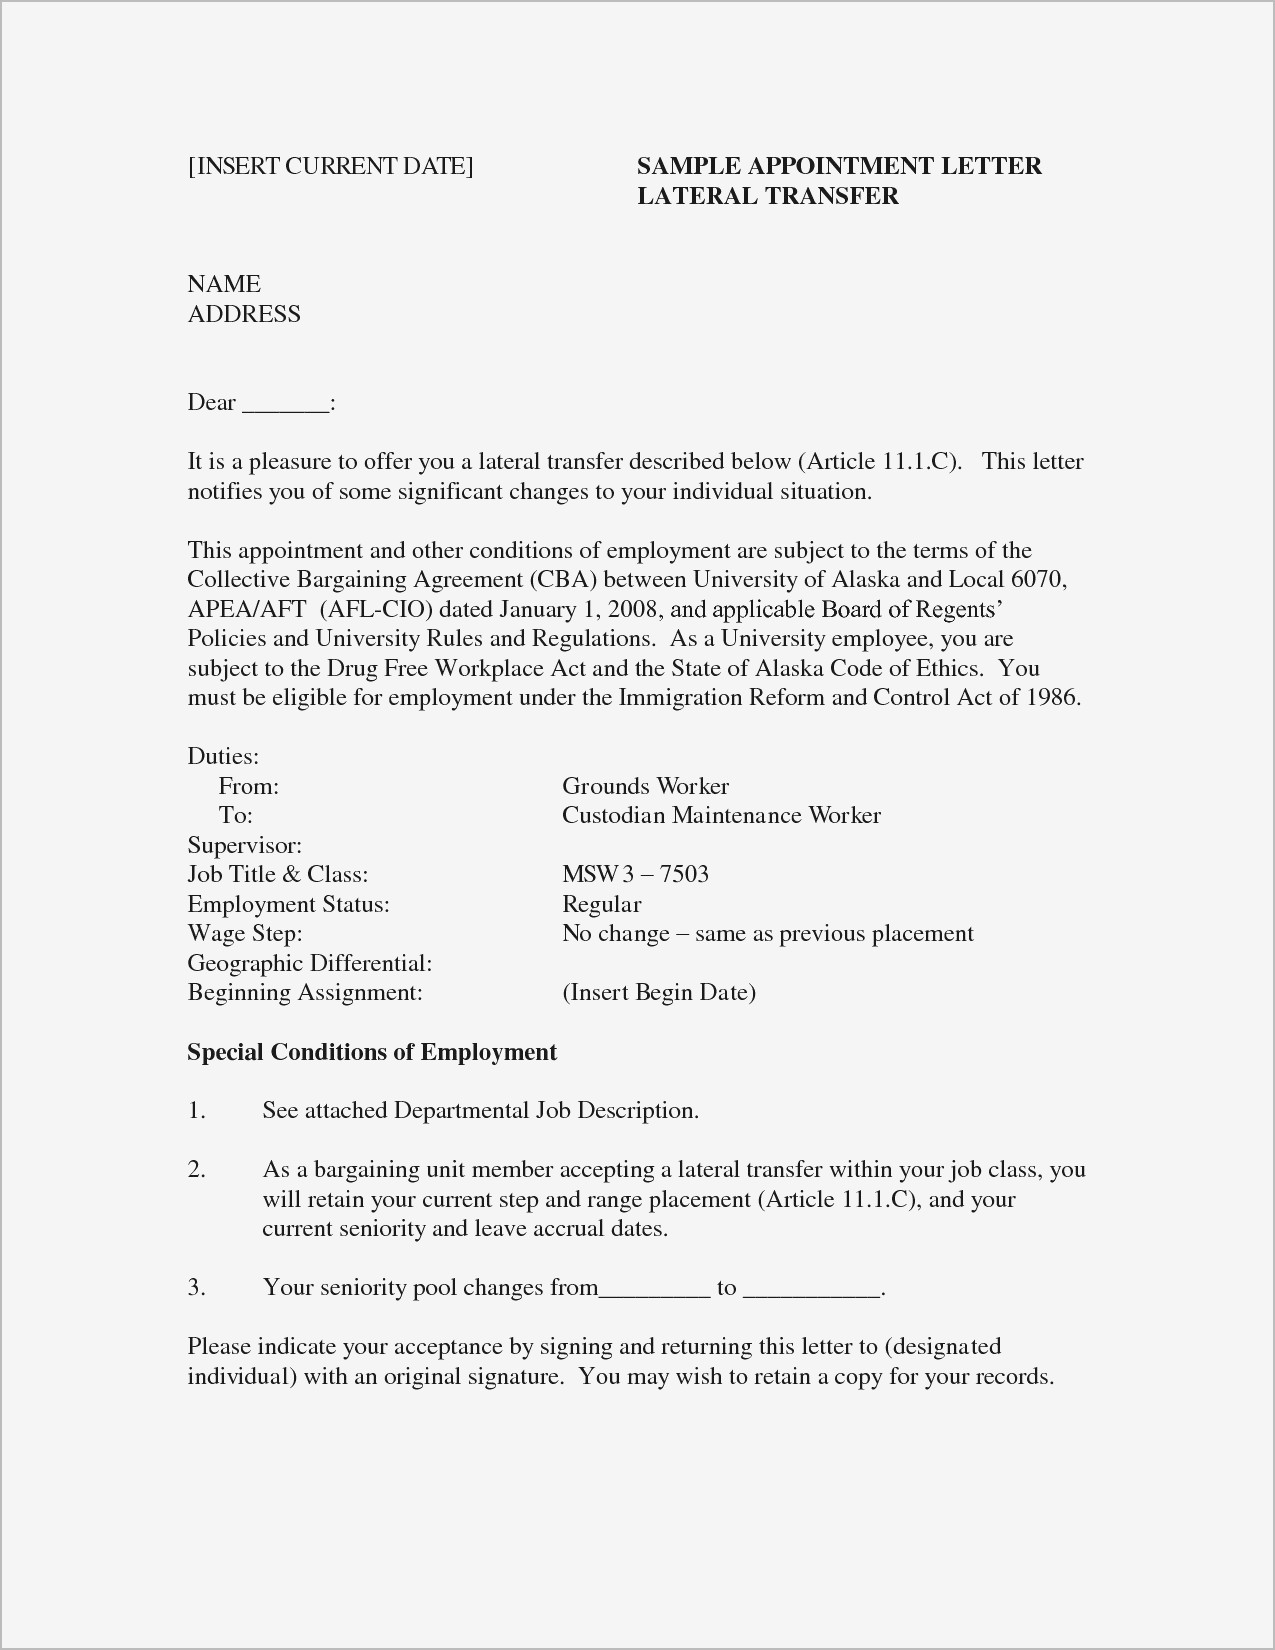 Letter Of Intent to Hire Template - Template for Letter Interest Letter Intent to Hire Template